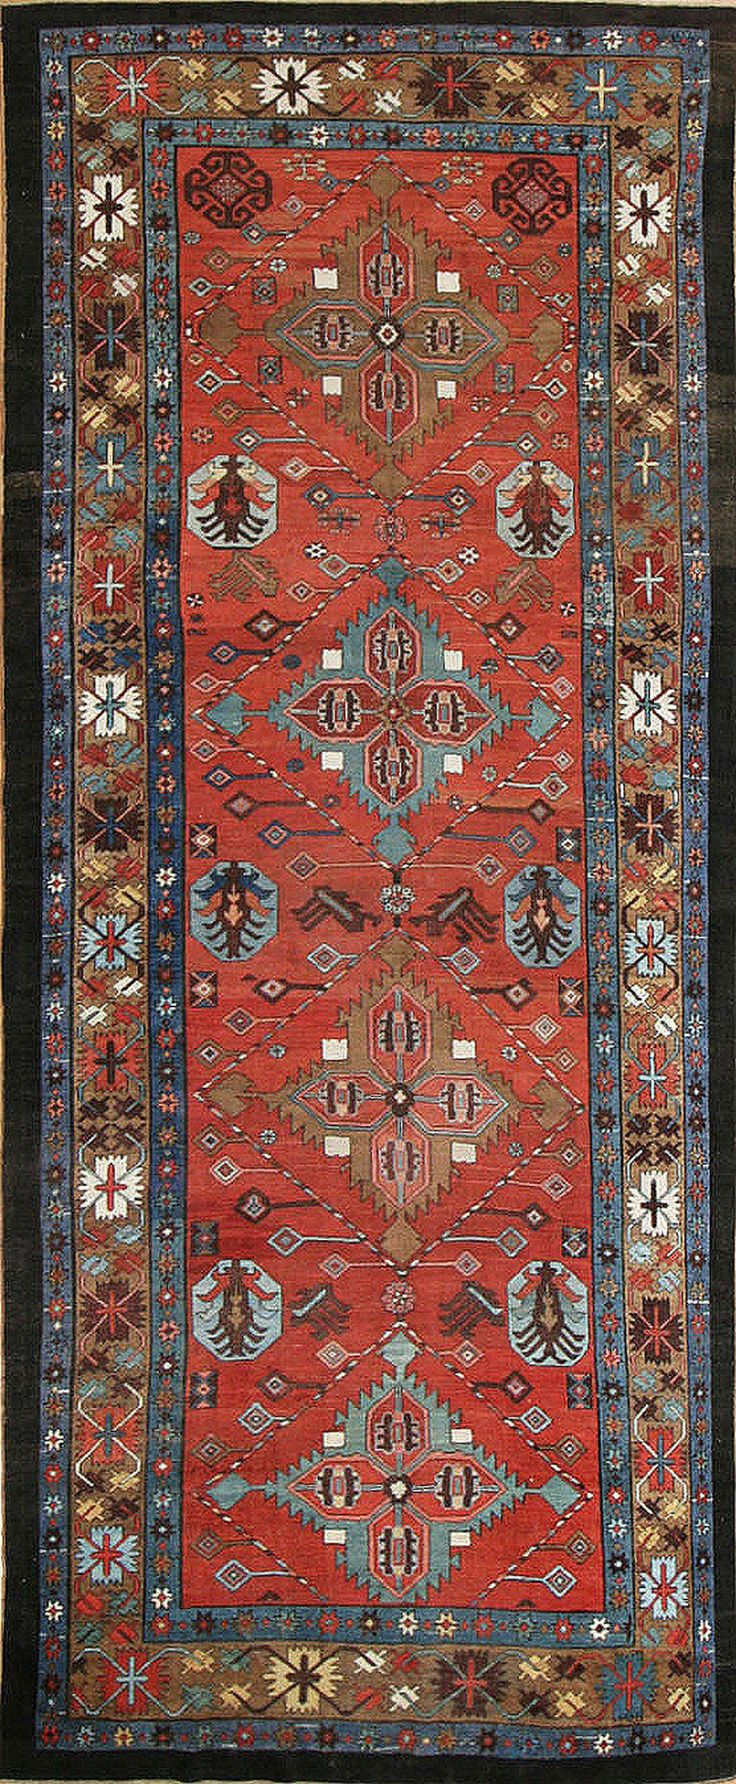 Antique Bakshaish rug, Persia, late 19th century